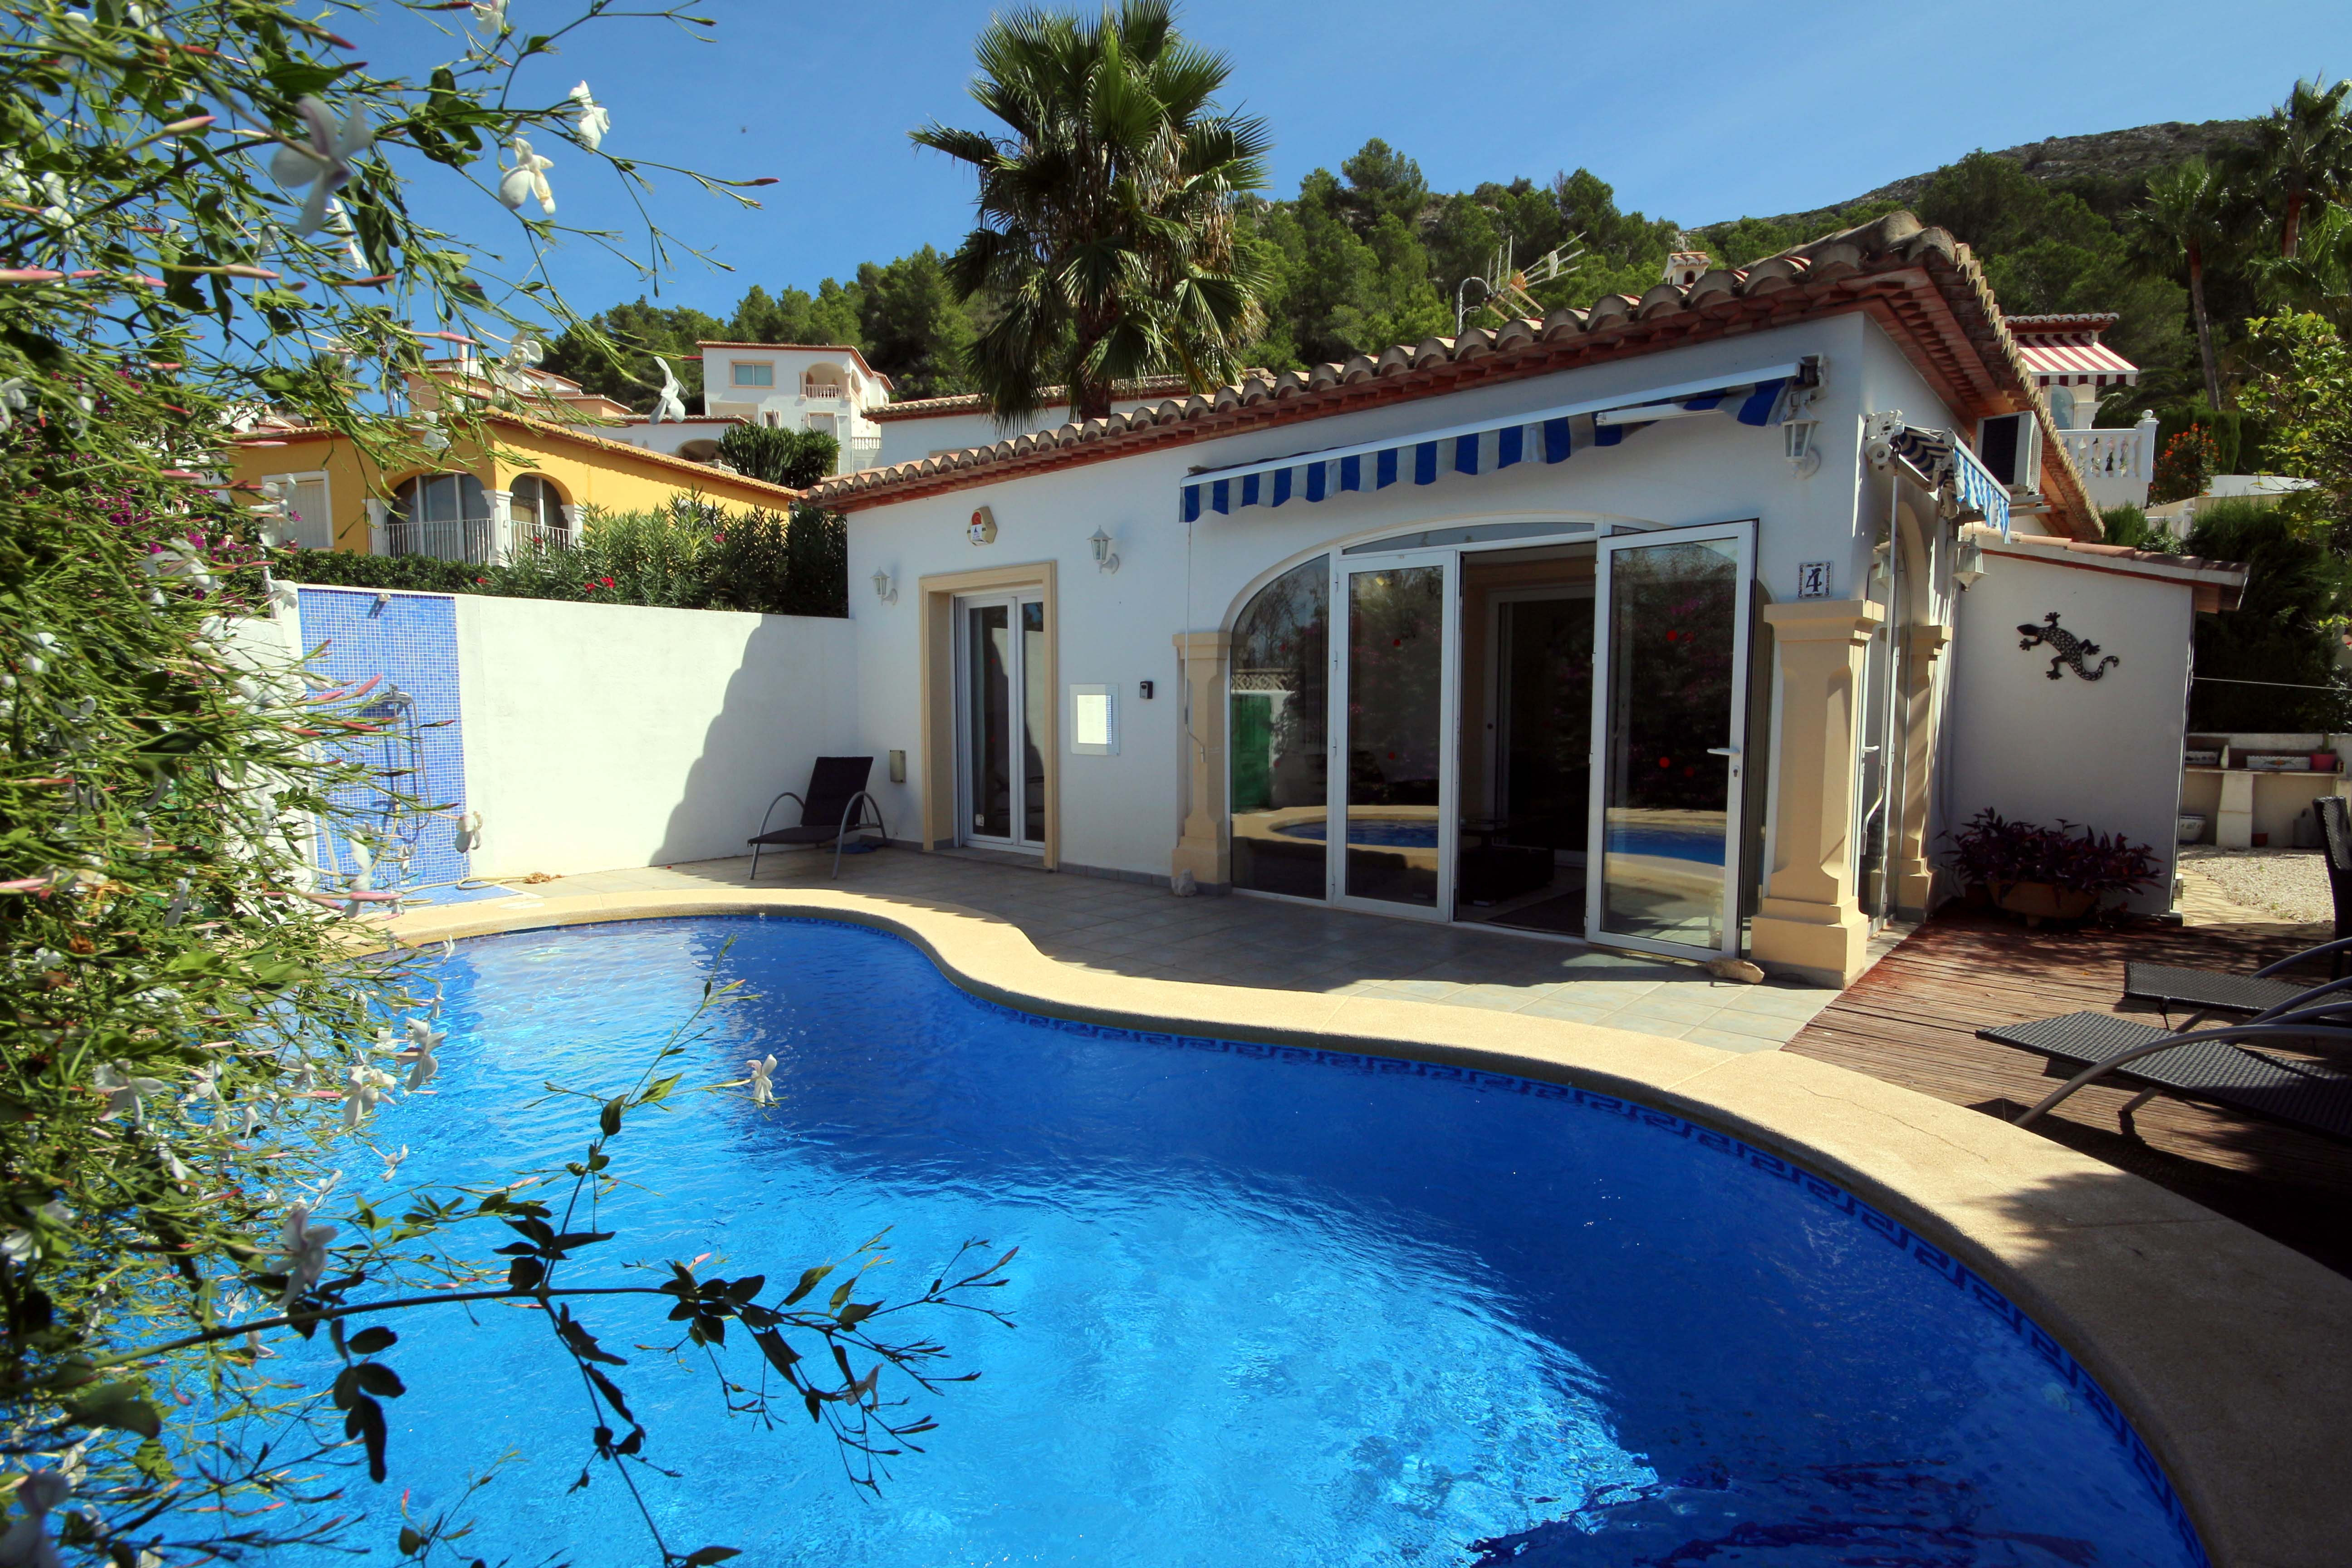 DETACHED TWO BEDROOM VILLA WITH A SWIMMING POOL